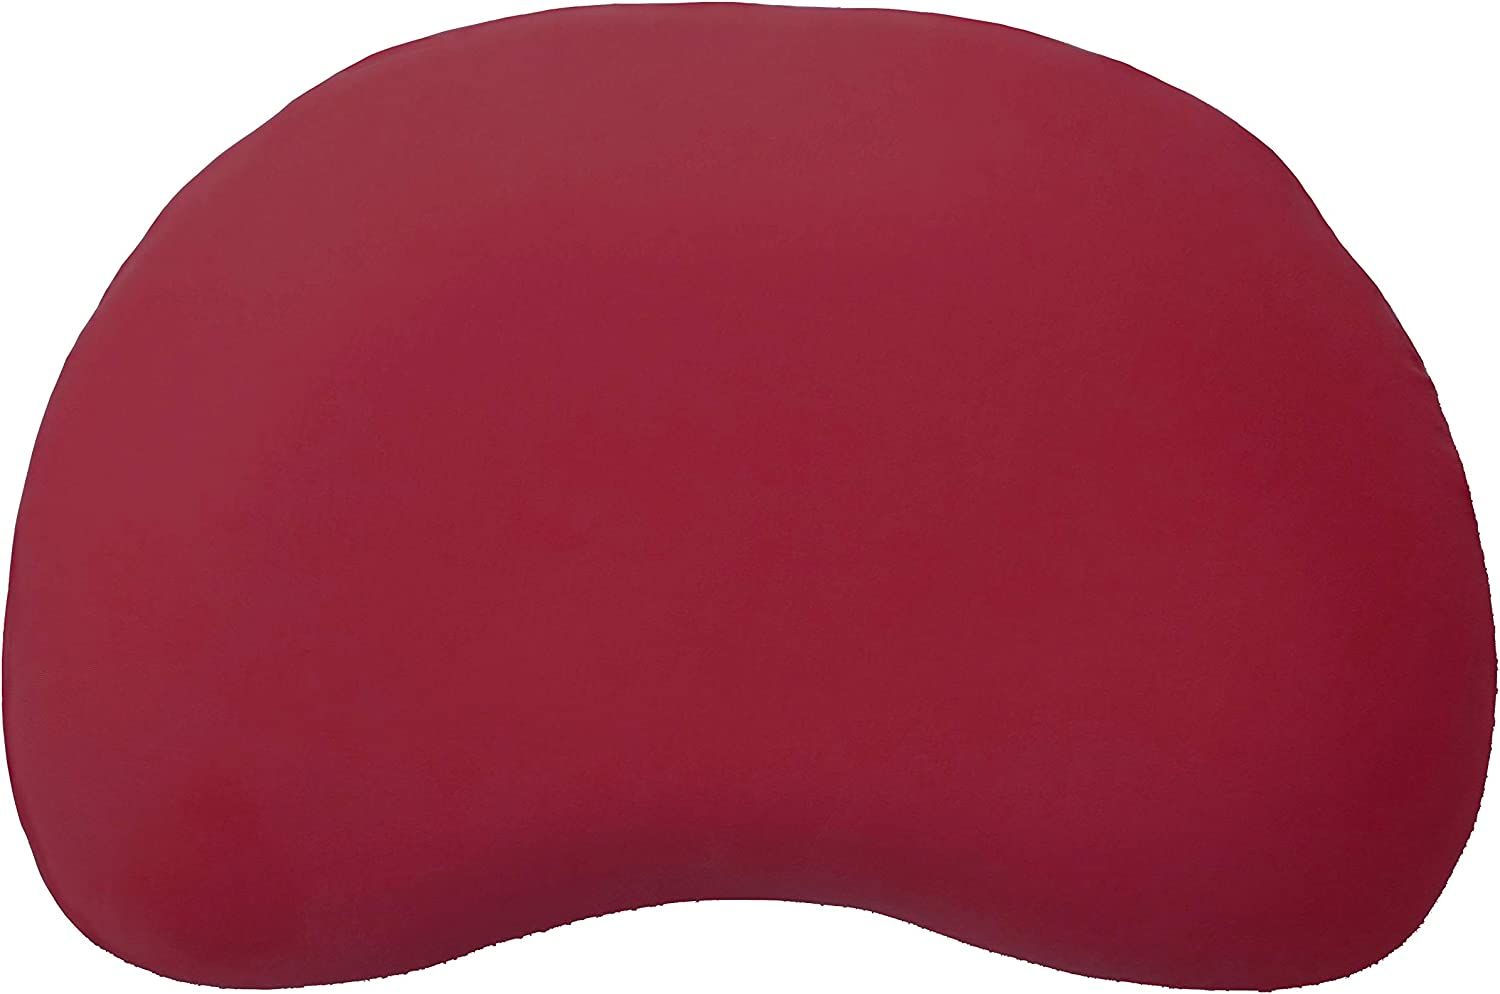 Jersey Cover for Sonata Sleeping Pillow